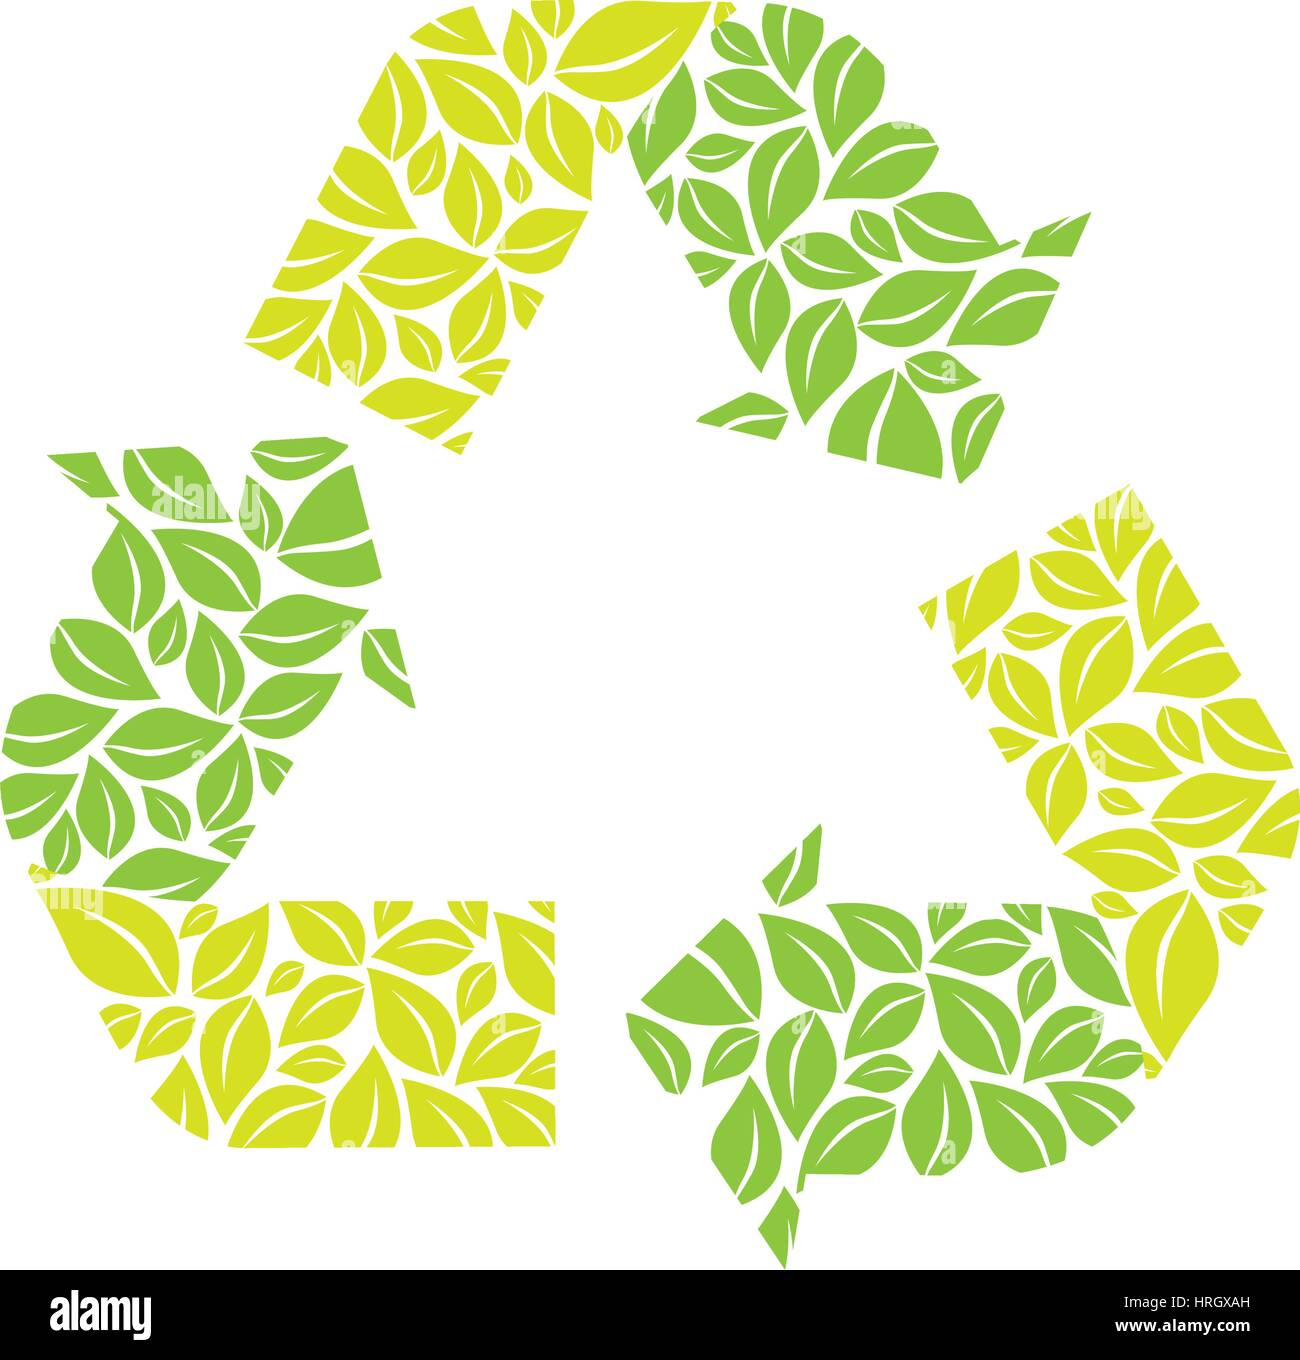 symbol reuse, reduce and recycle icon - Stock Image